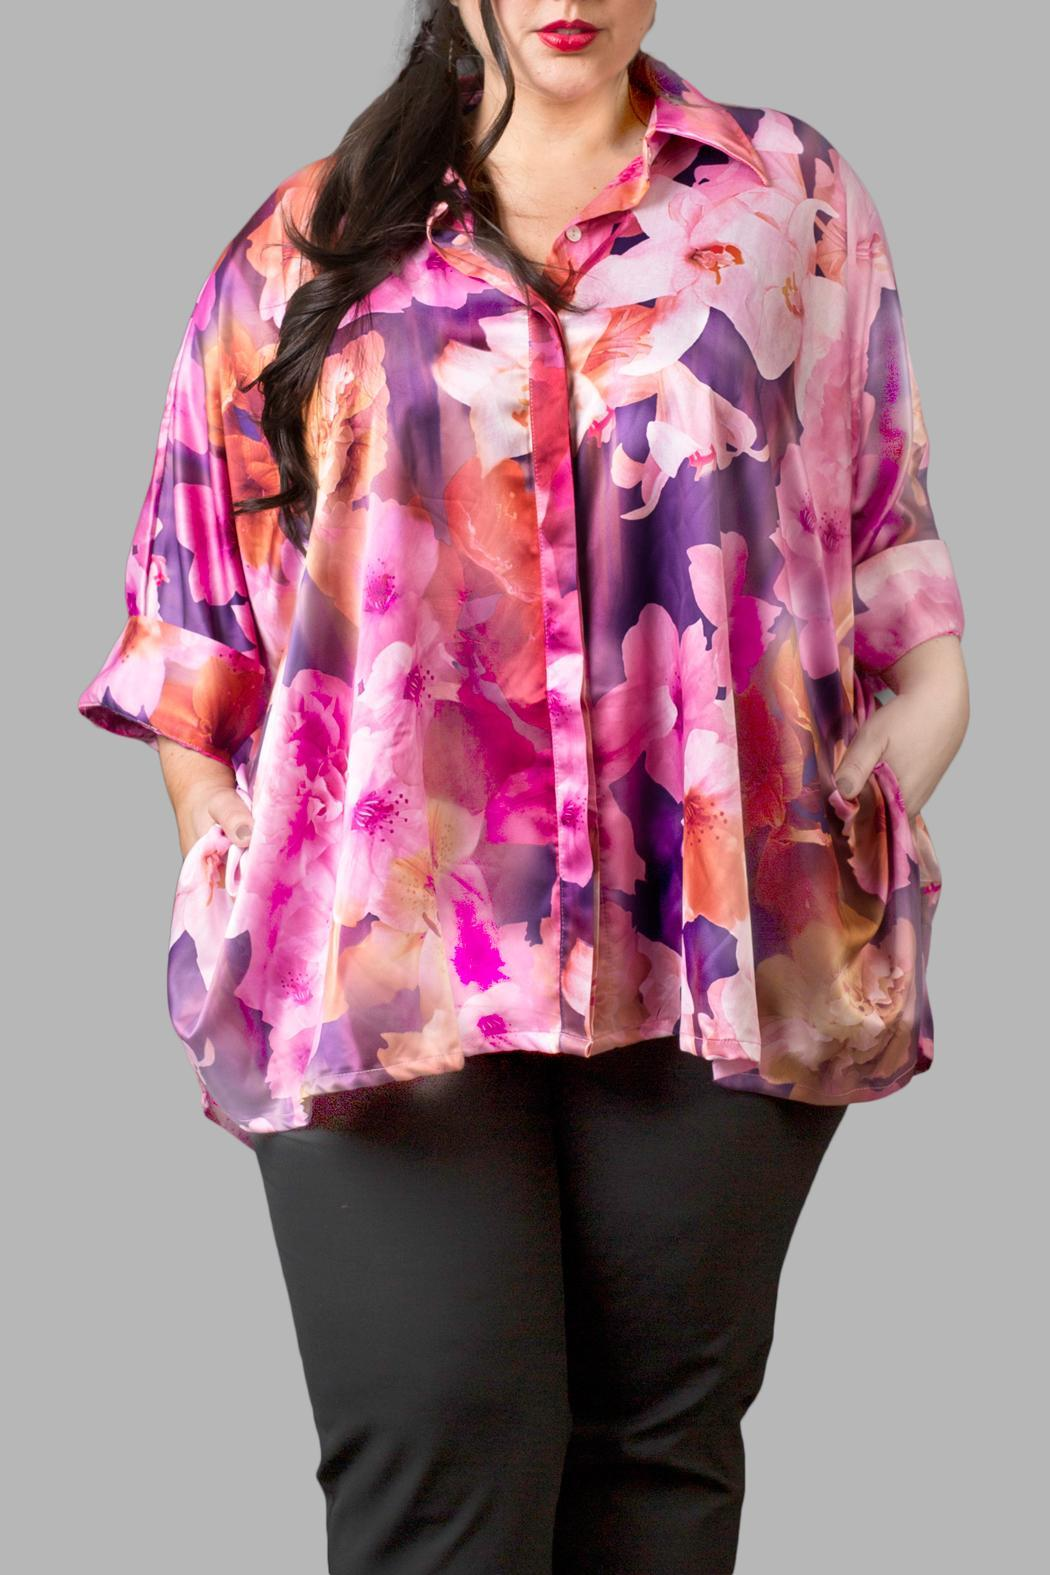 Yona New York Floral Charmeuse Pink Top - Main Image